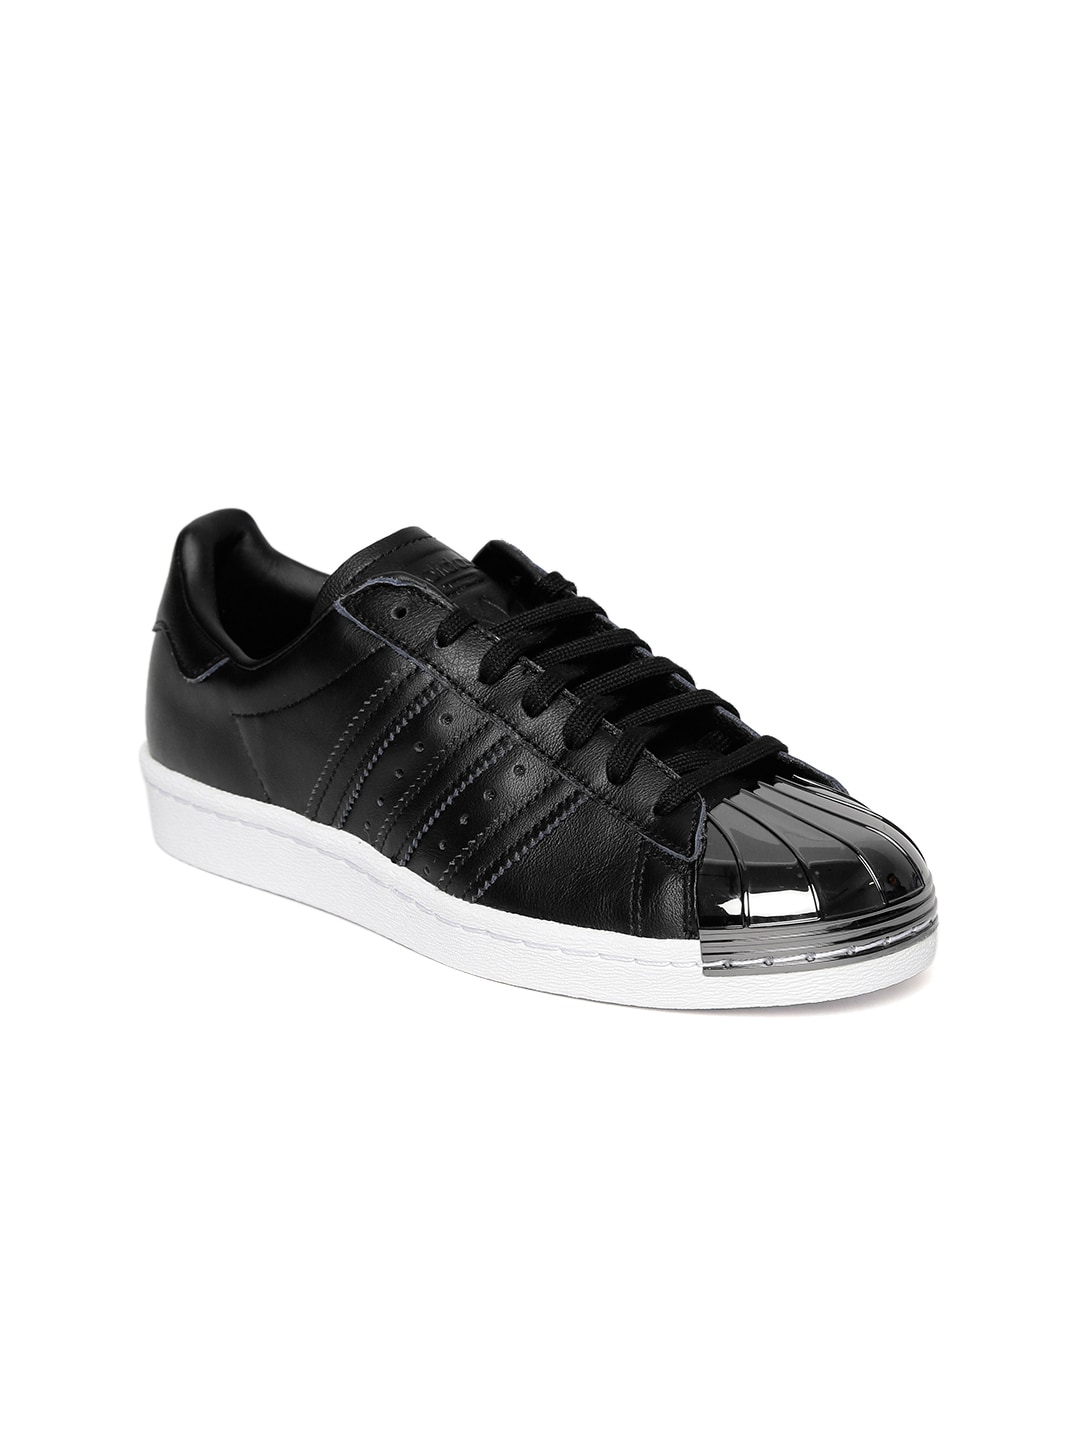 size 40 1a446 e1b04 Adidas Superstar Shoes - Buy Adidas Superstar Shoes Online -